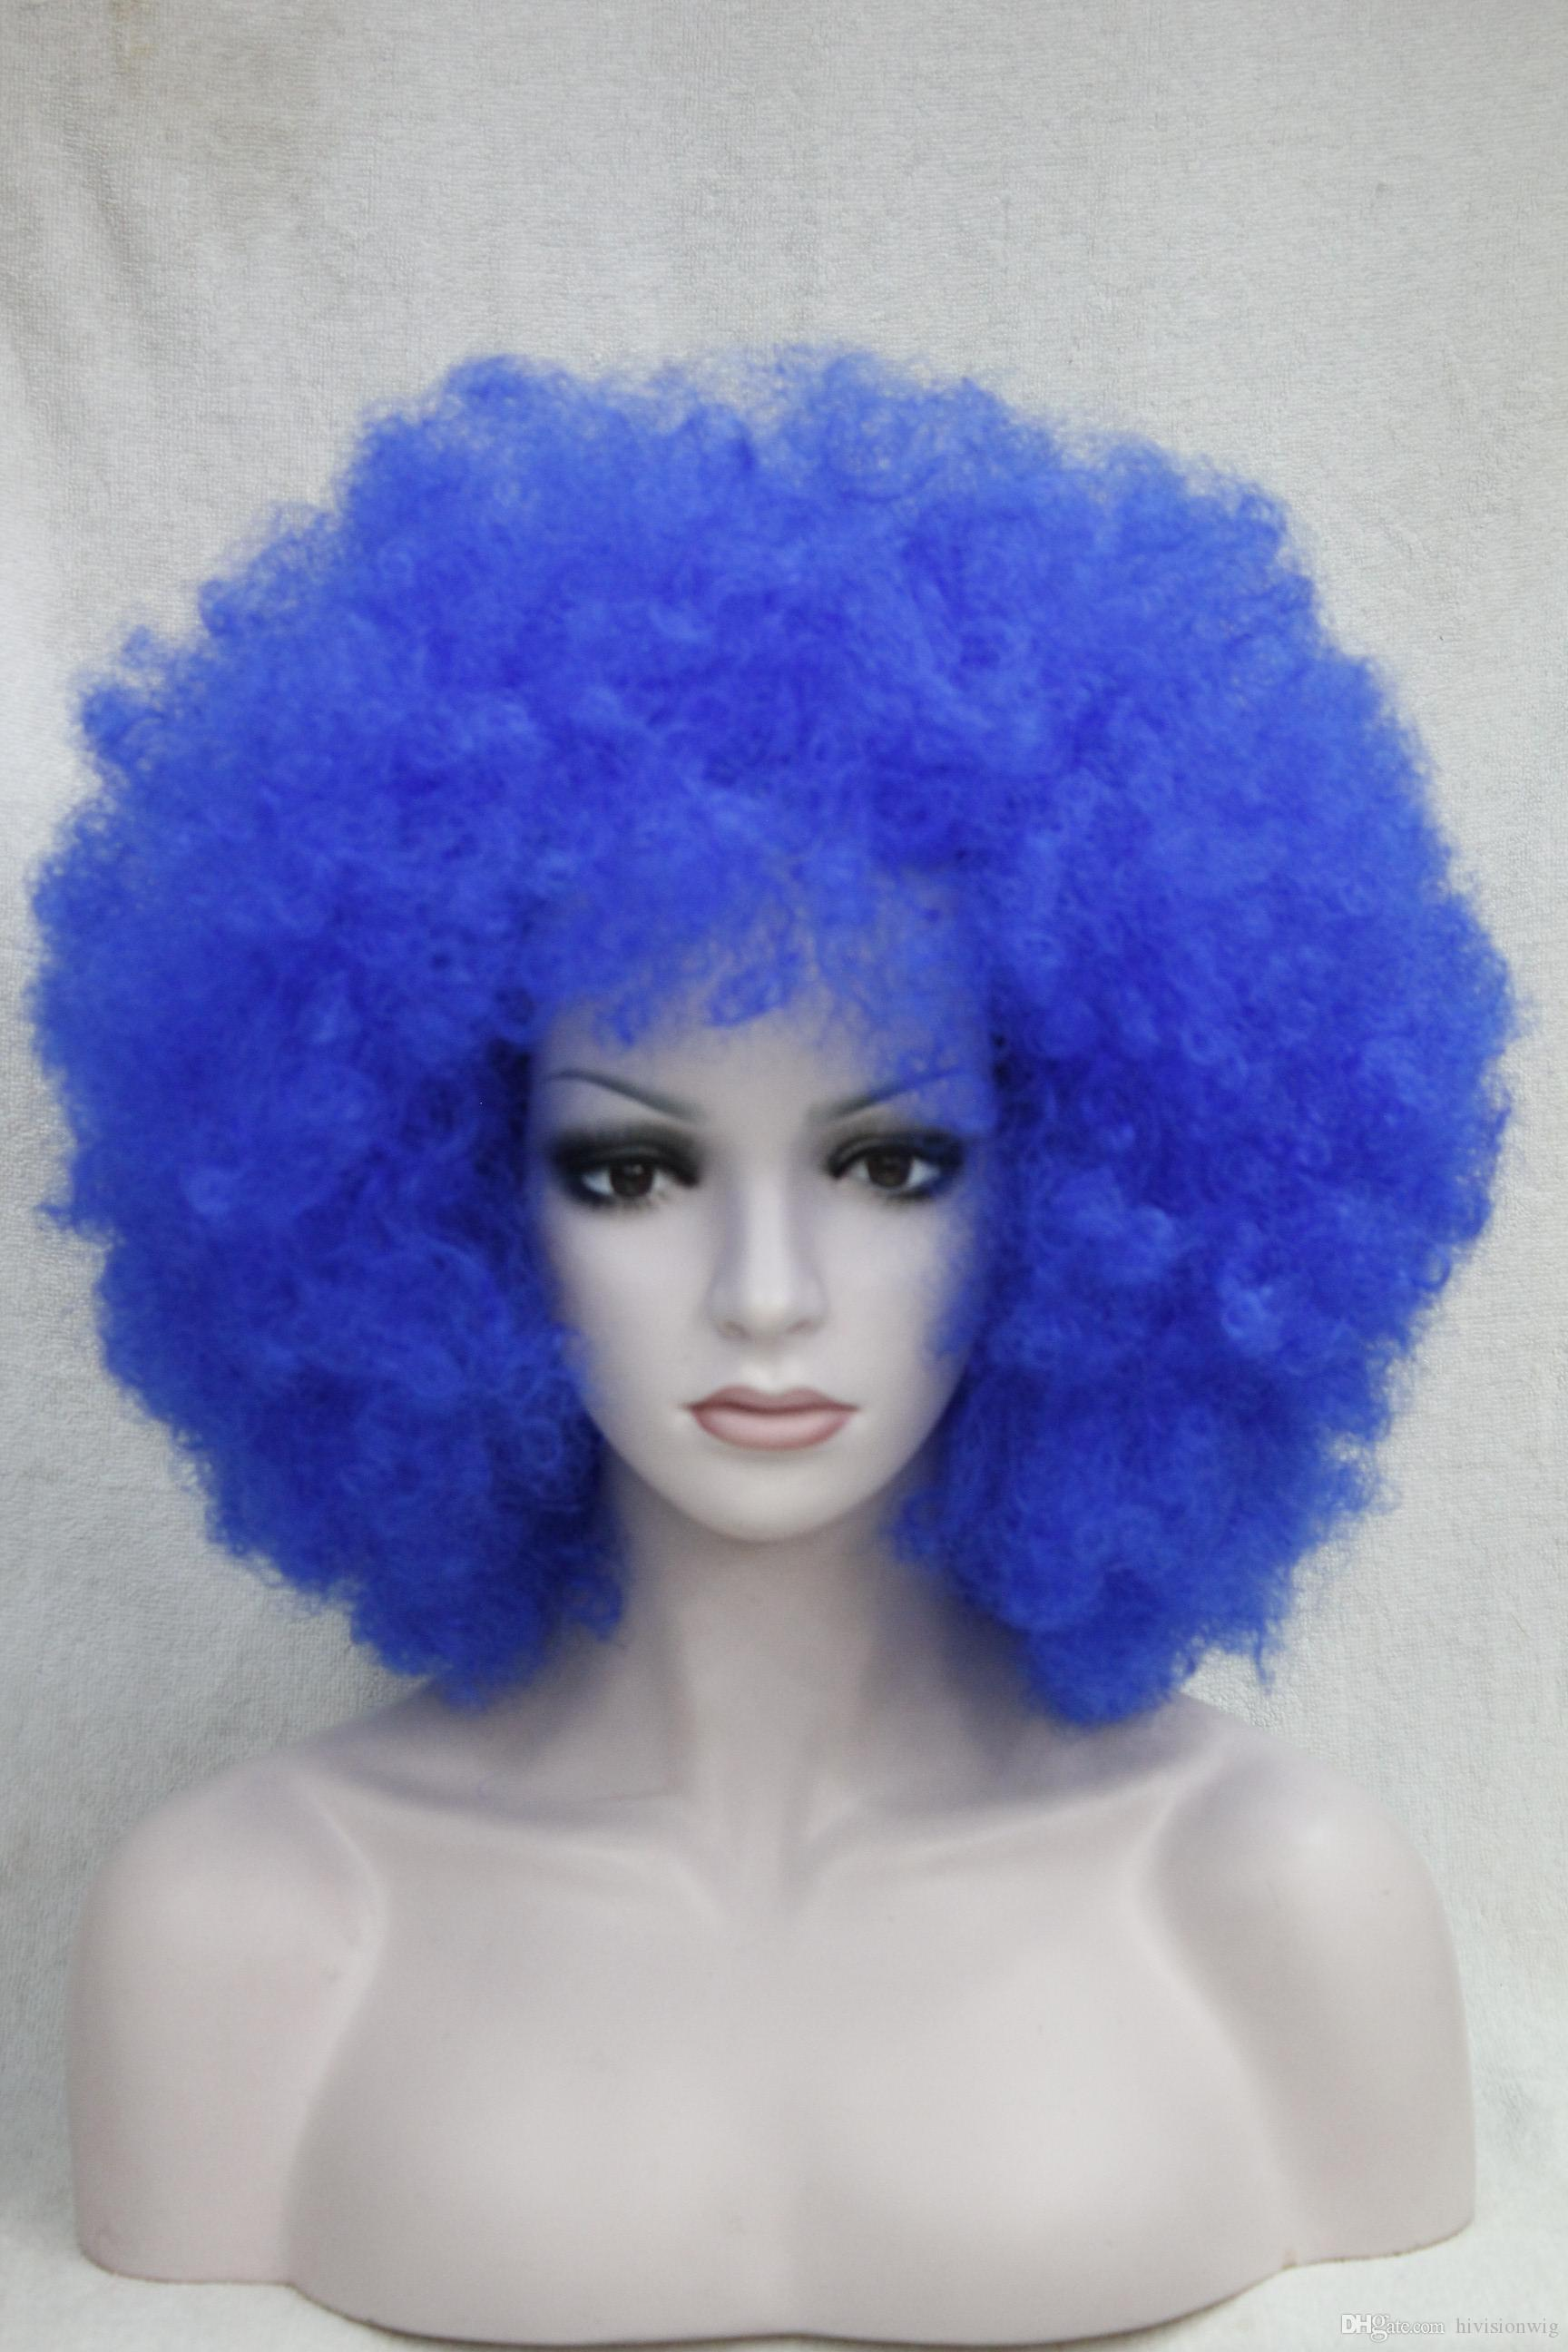 ! DARK BLUE CURLY AFRO WIG CIRCUS CLOWN UNISEX FANCY DRESS FOOTBALL SPORT  SUPPORTER Wigs Natural Synthetic Wigs Natural Hair Wigs Online From  Hivisionwig c09146b7600e